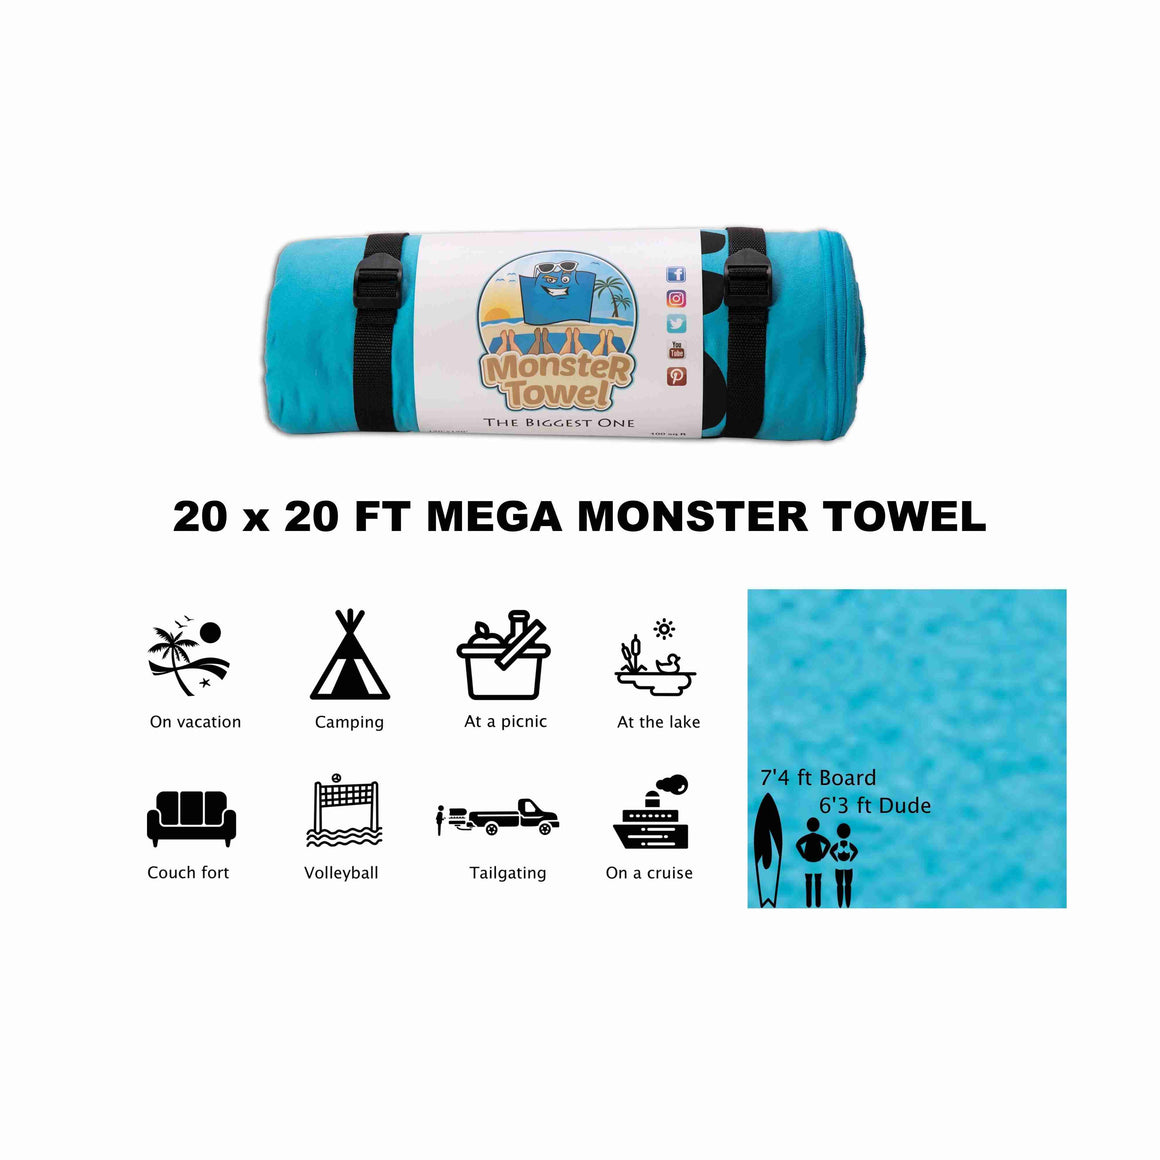 MEGA Monster Towel 20x20 FT (MADE TO ORDER SHIPS 60 to 90 DAYS)